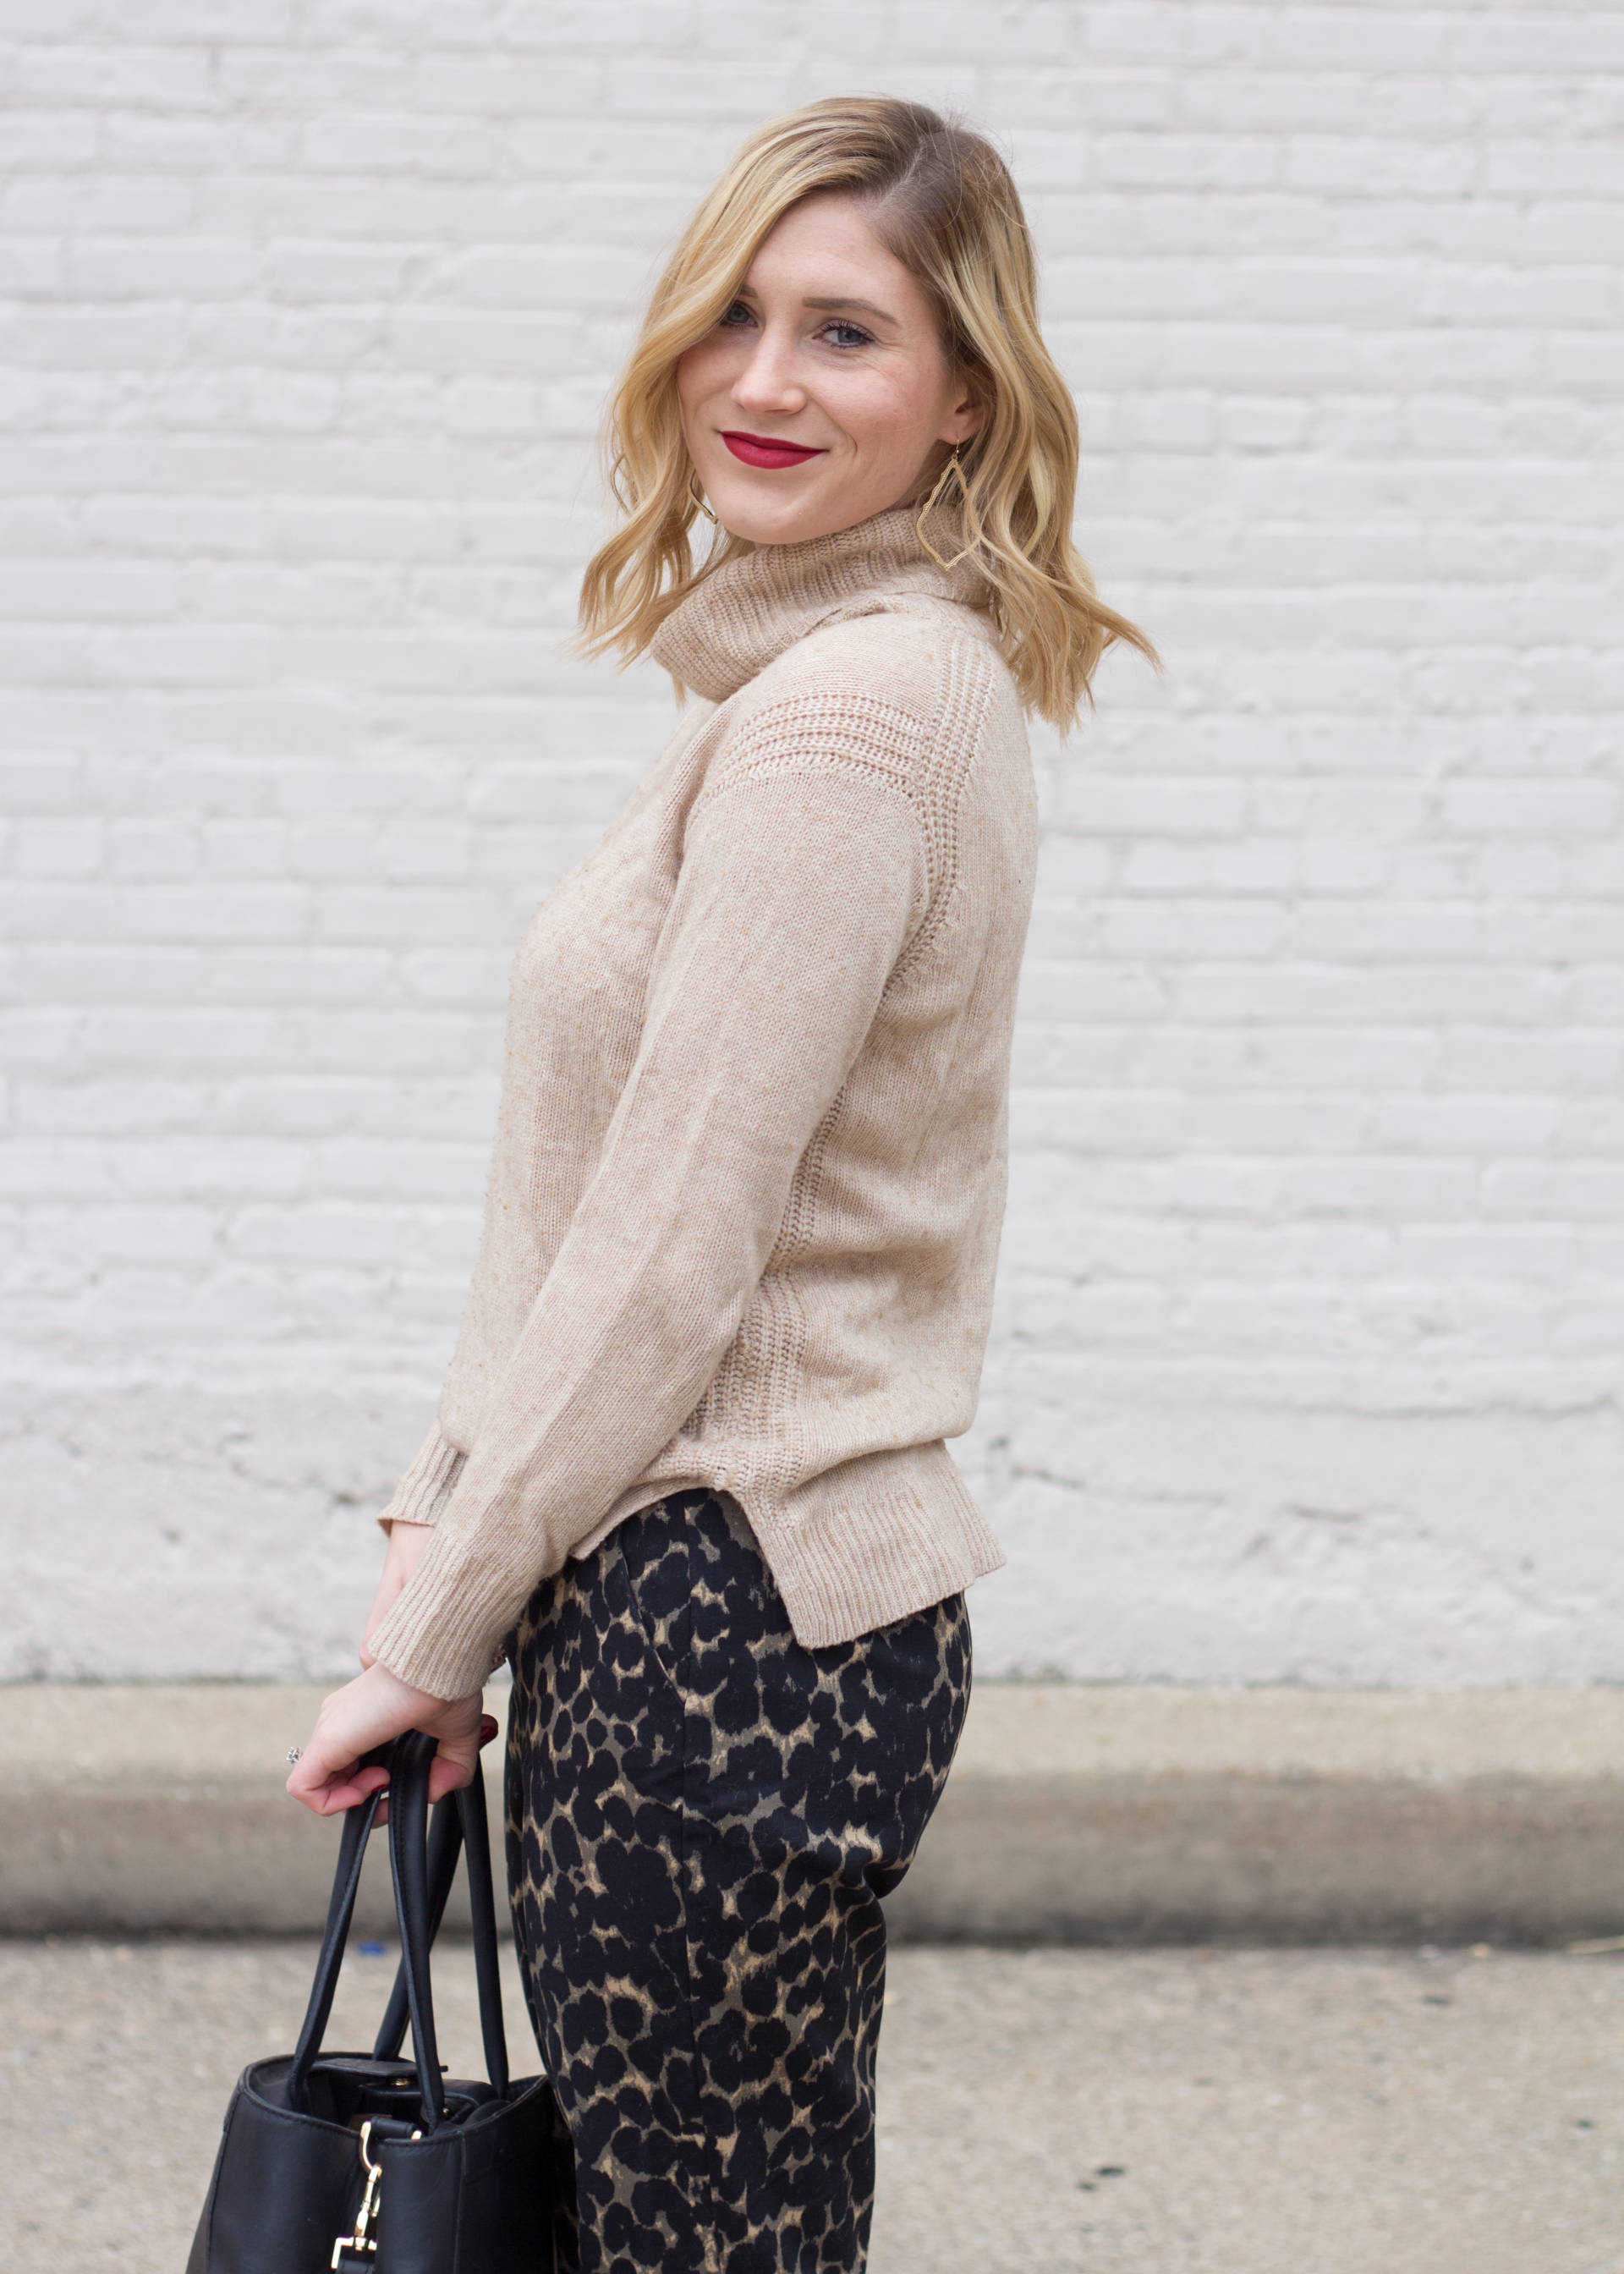 How to Wear Leopard in the Office